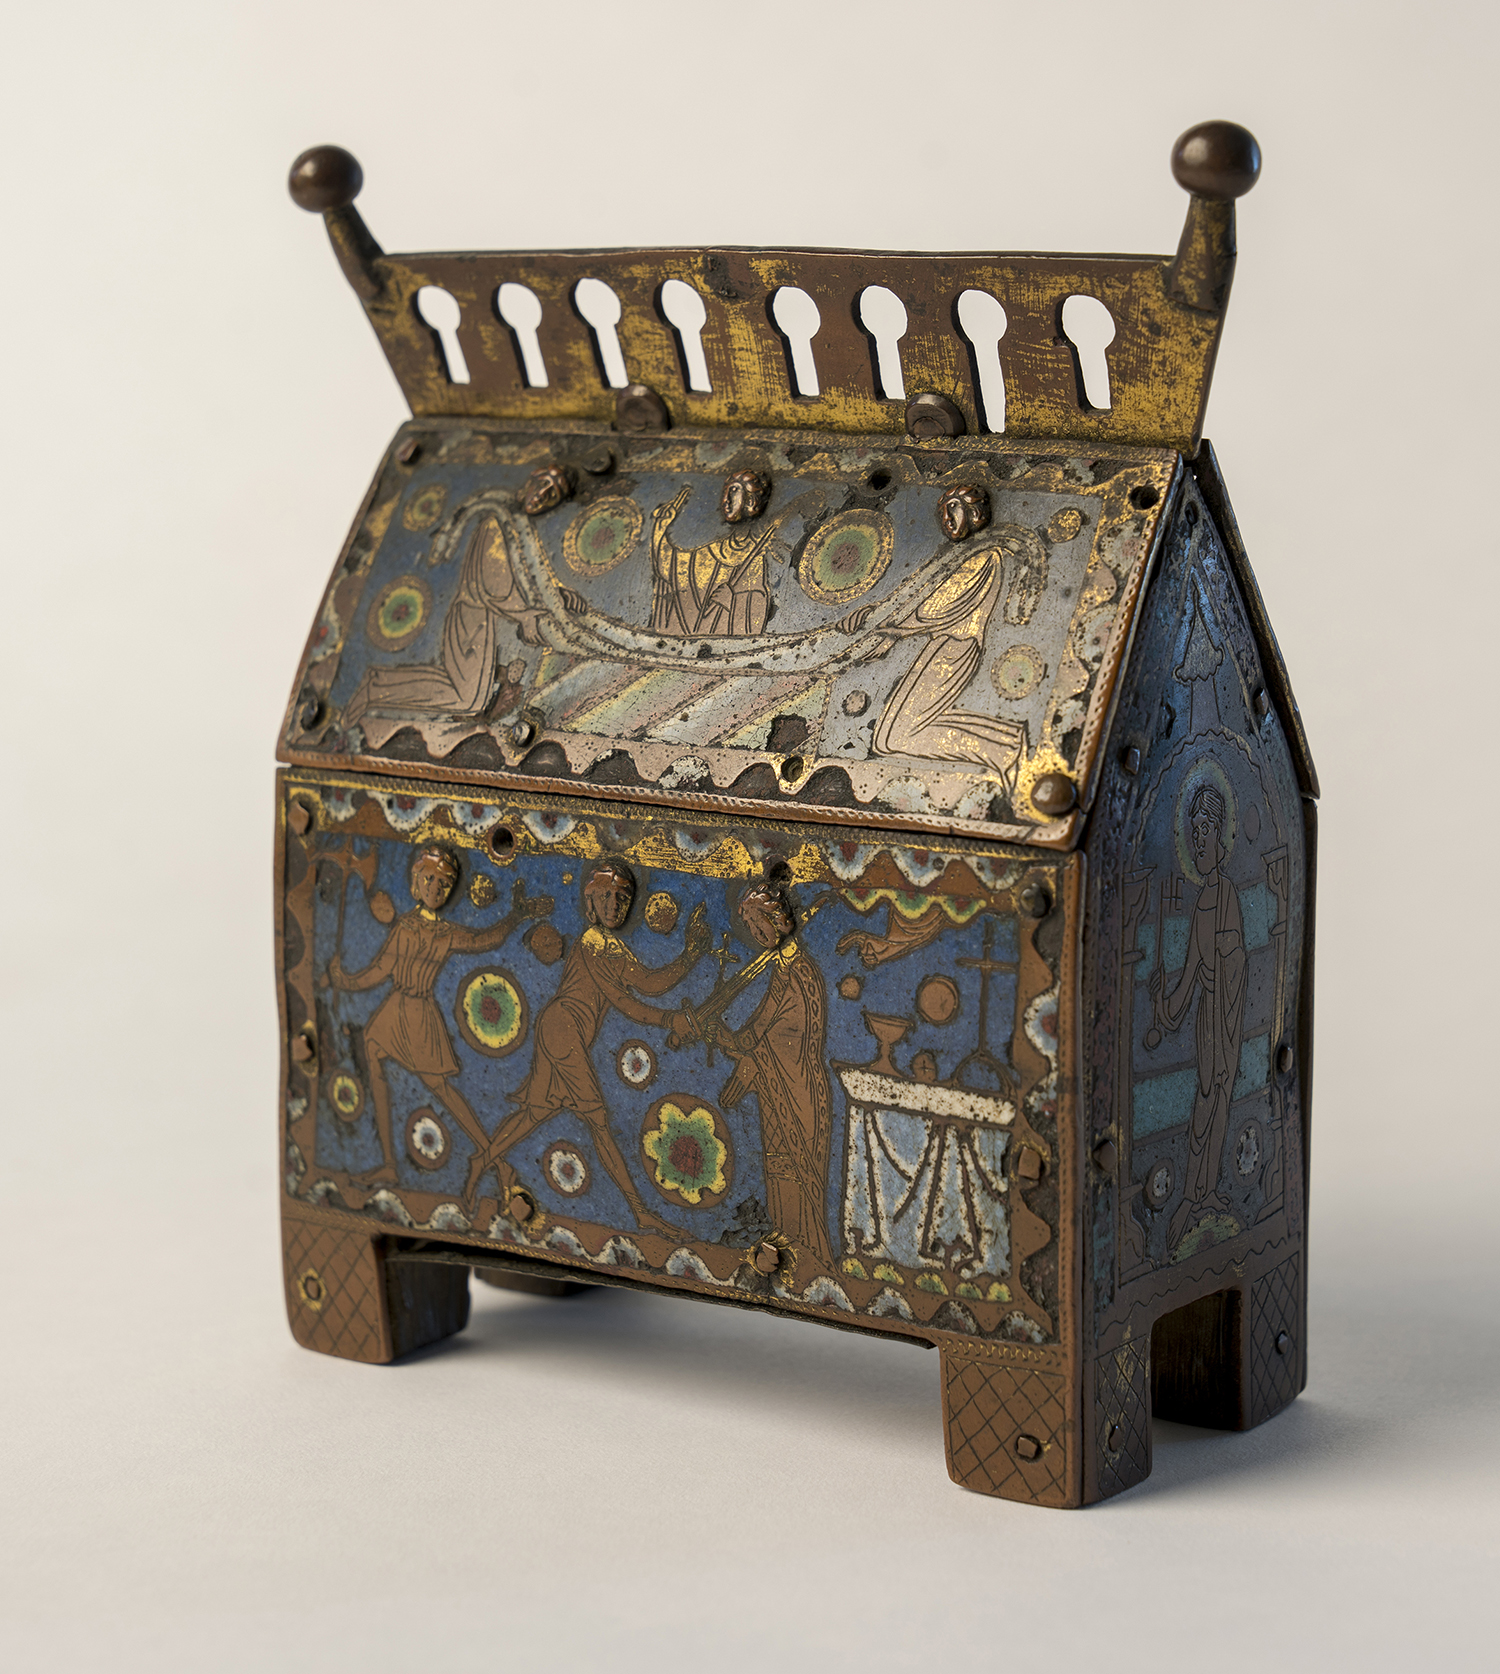 Figure 7:This thirteenth-century enamel reliquary from Limoges, France, originally contained a fragment of the body of Saint Thomas Becket. On exhibit in Glencairn Museum's Medieval Treasury (05.EN.112).